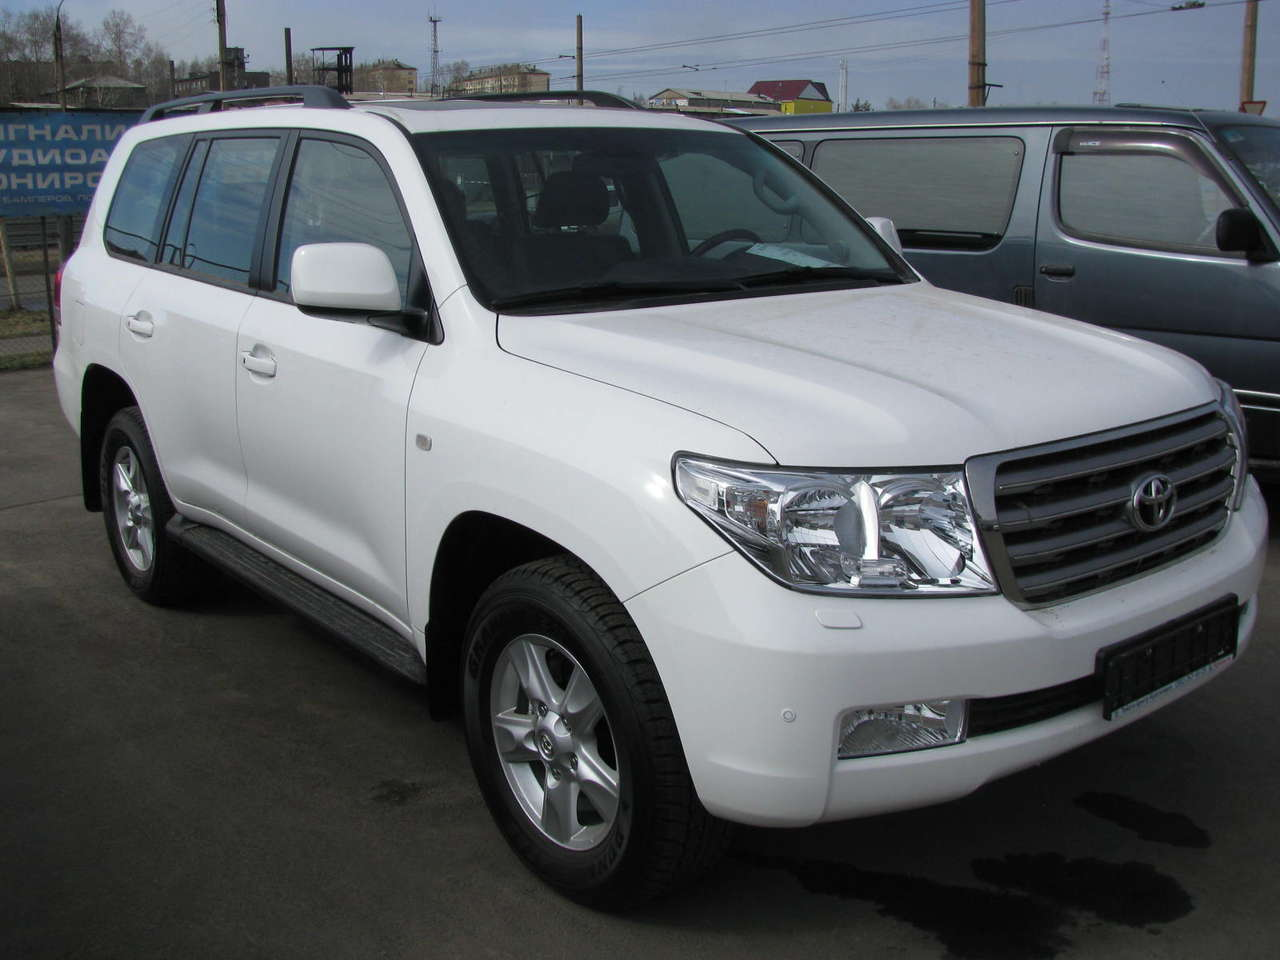 used 2010 toyota land cruiser photos 4700cc gasoline. Black Bedroom Furniture Sets. Home Design Ideas